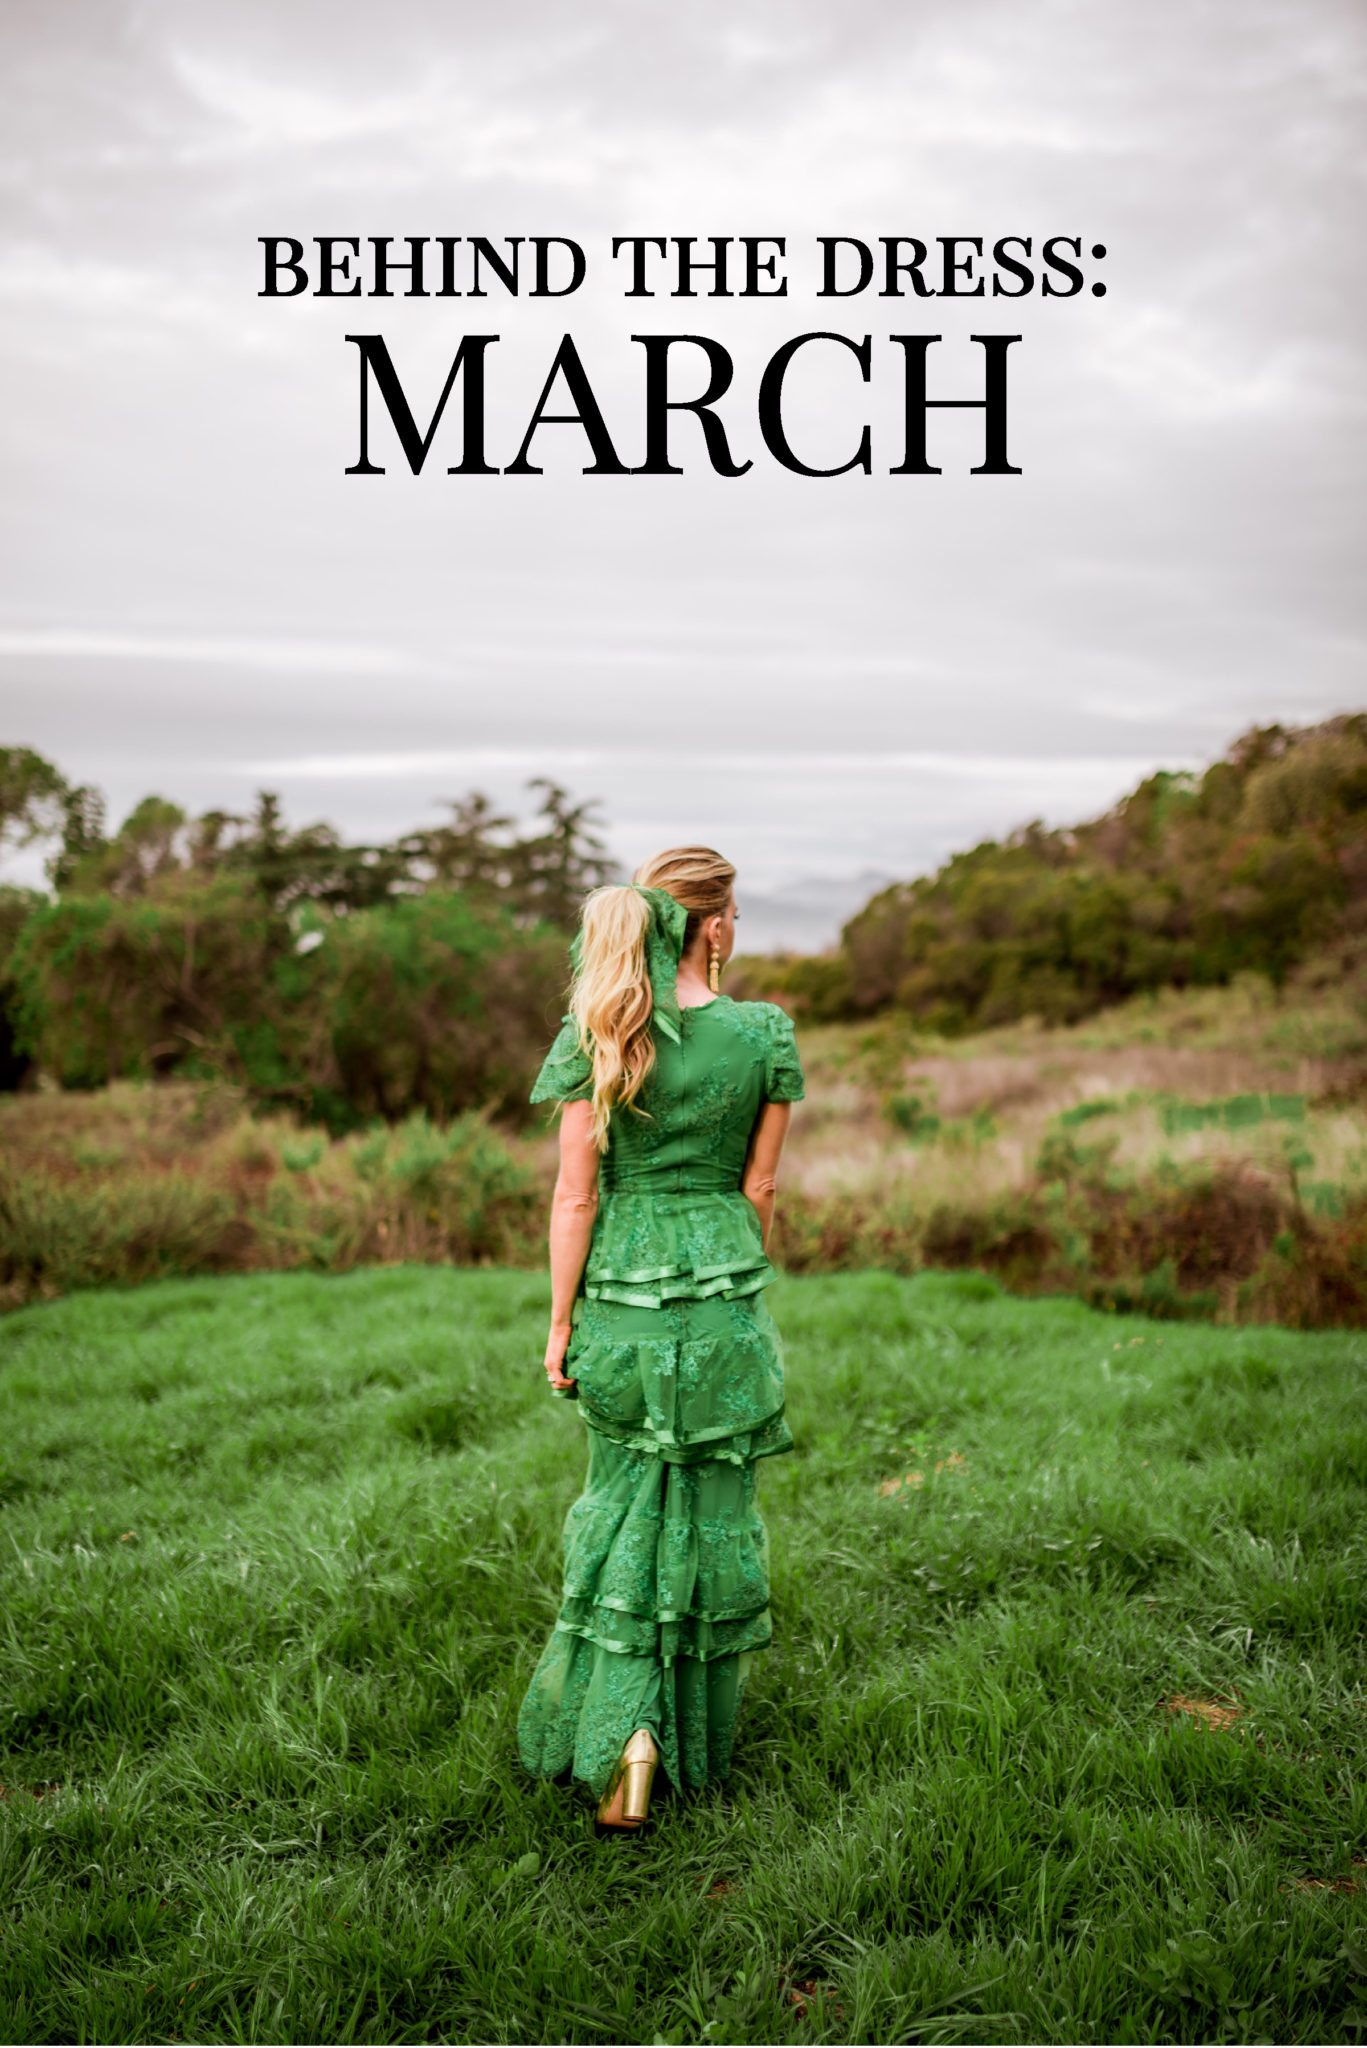 Behind The Dress: March